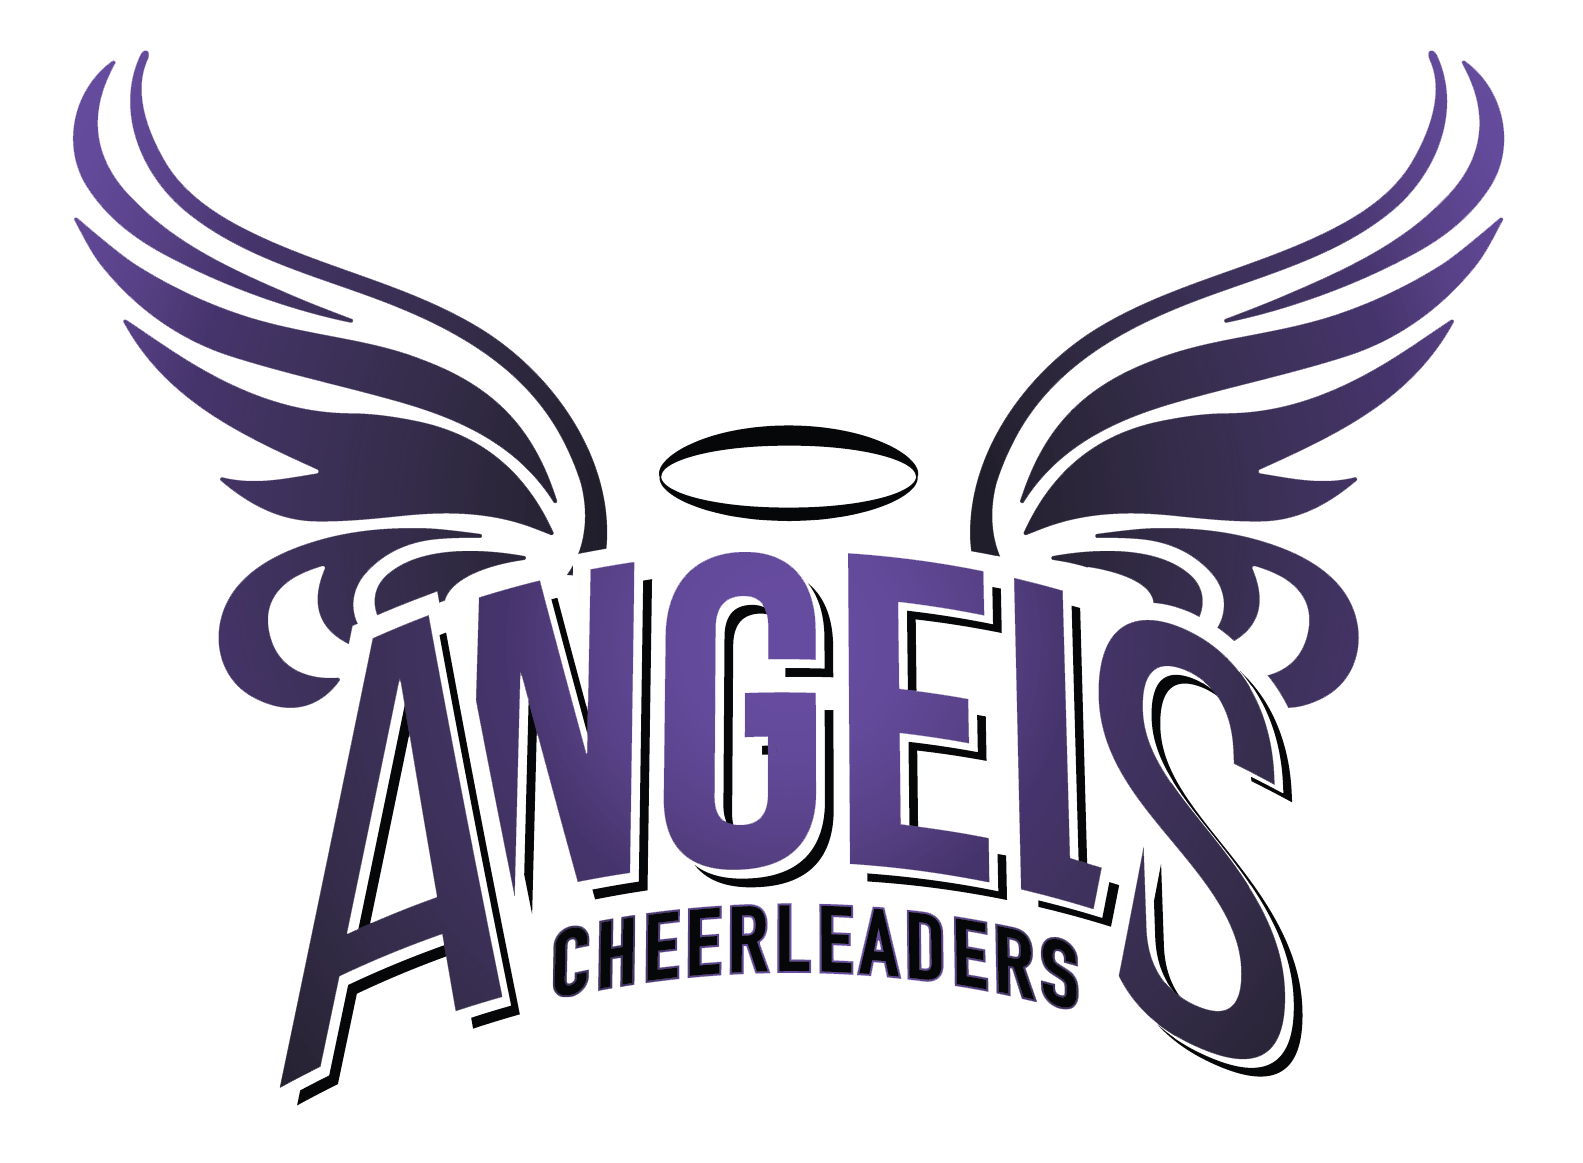 Lausanne Angels Cheerleaders Logo